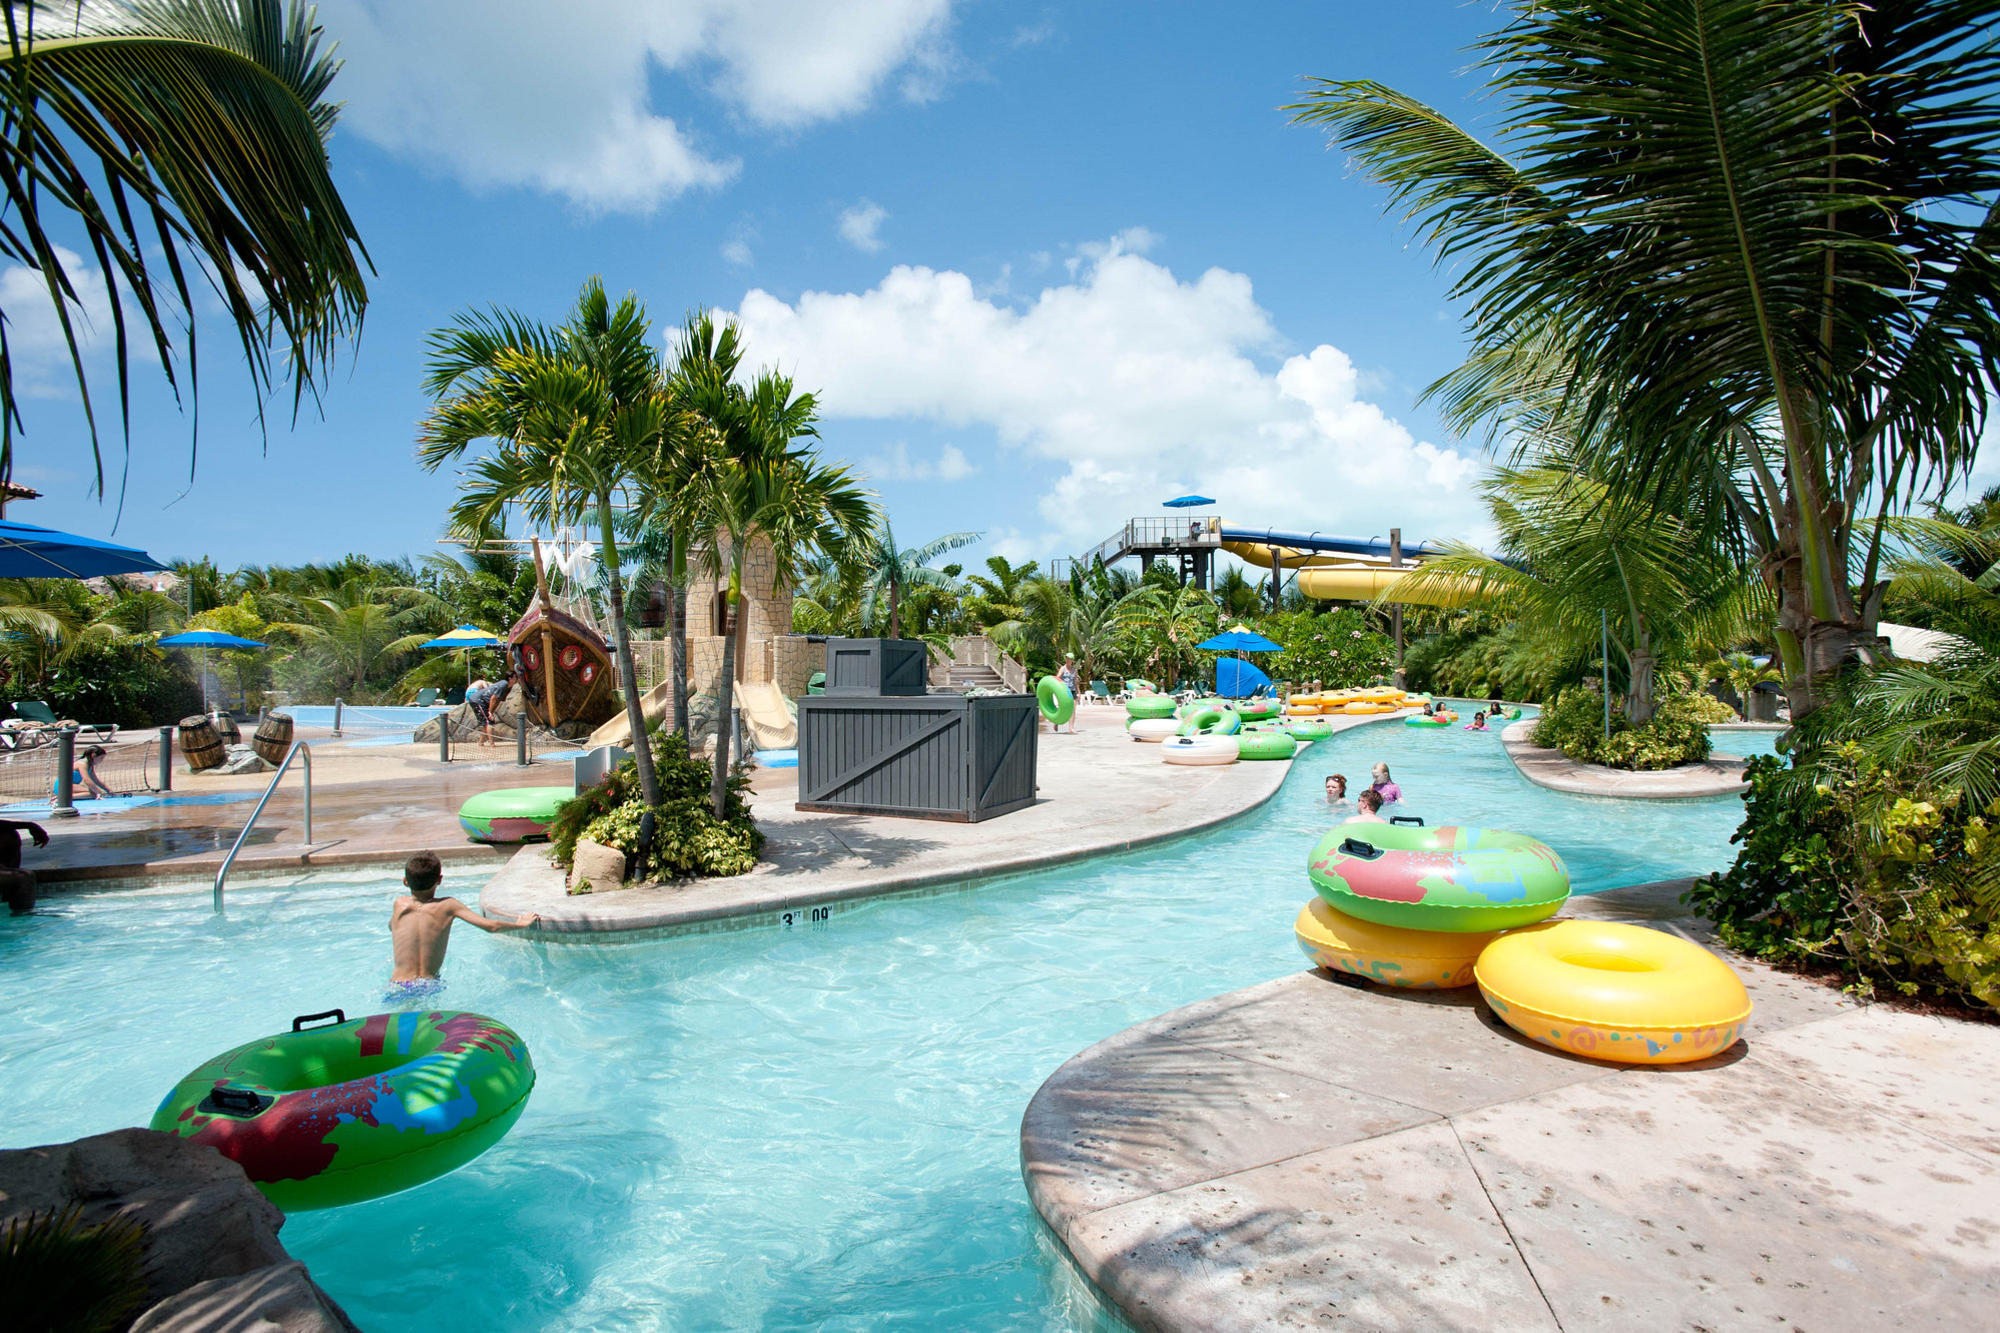 Beaches Turks and Caicos Resort Villages and Spa water park with lazy river